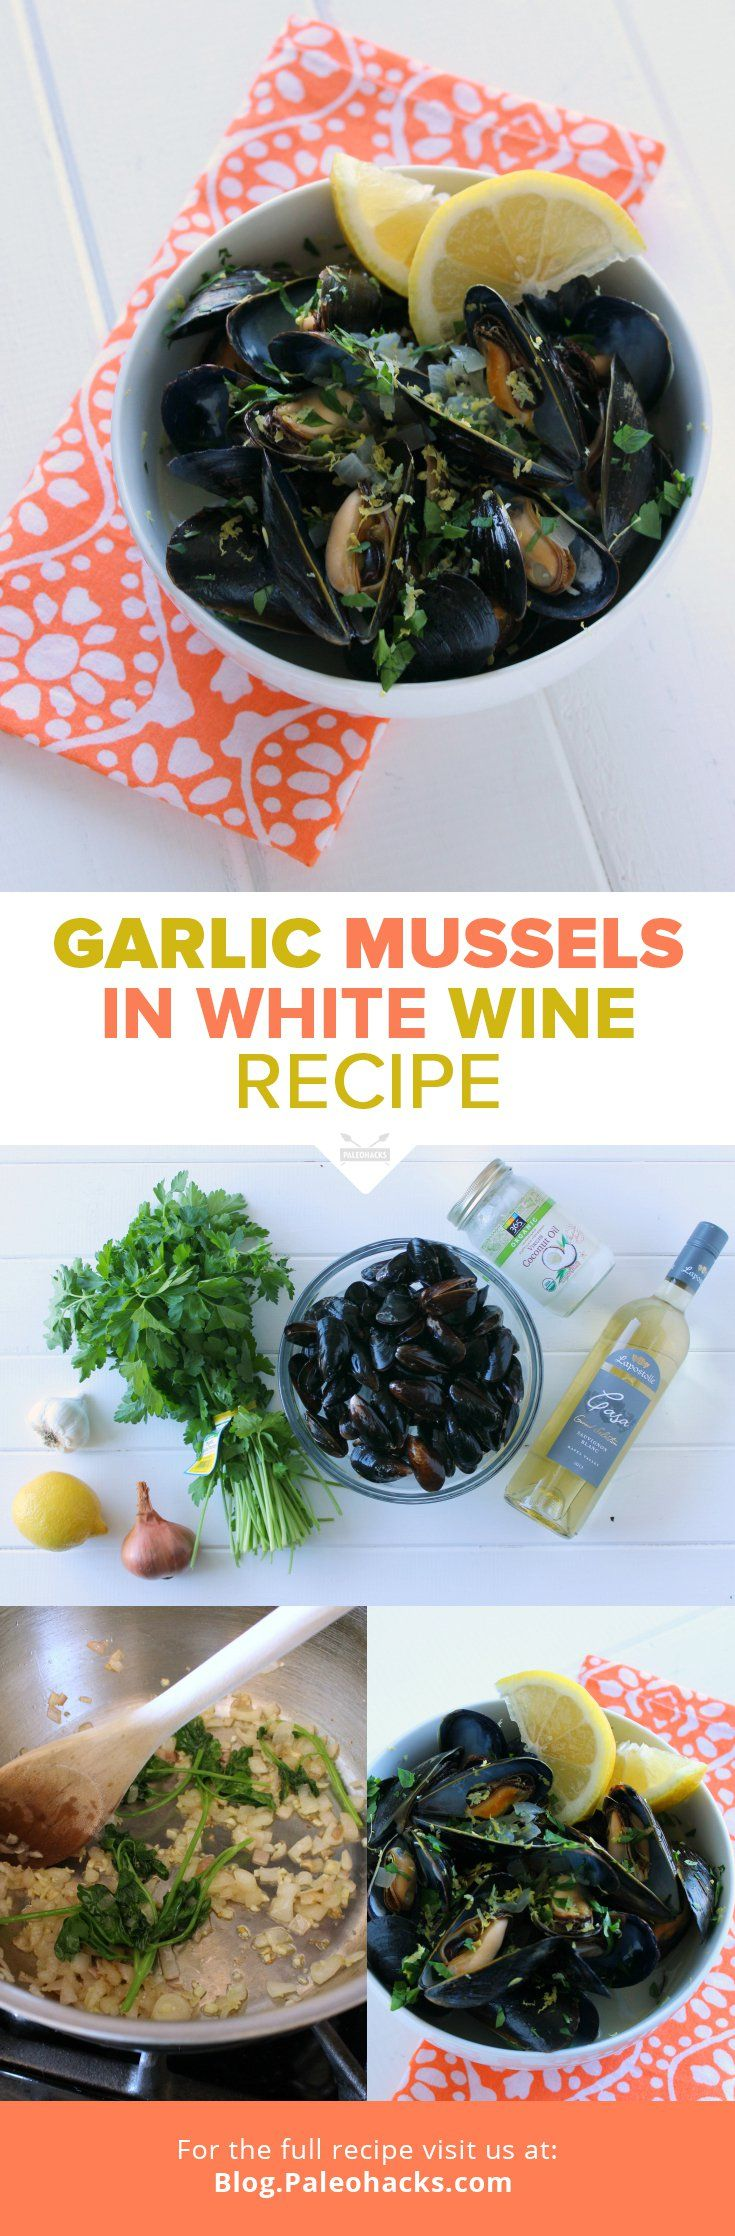 Garlic Mussels in White Wine Recipe   #justeatrealfood #paleohacks